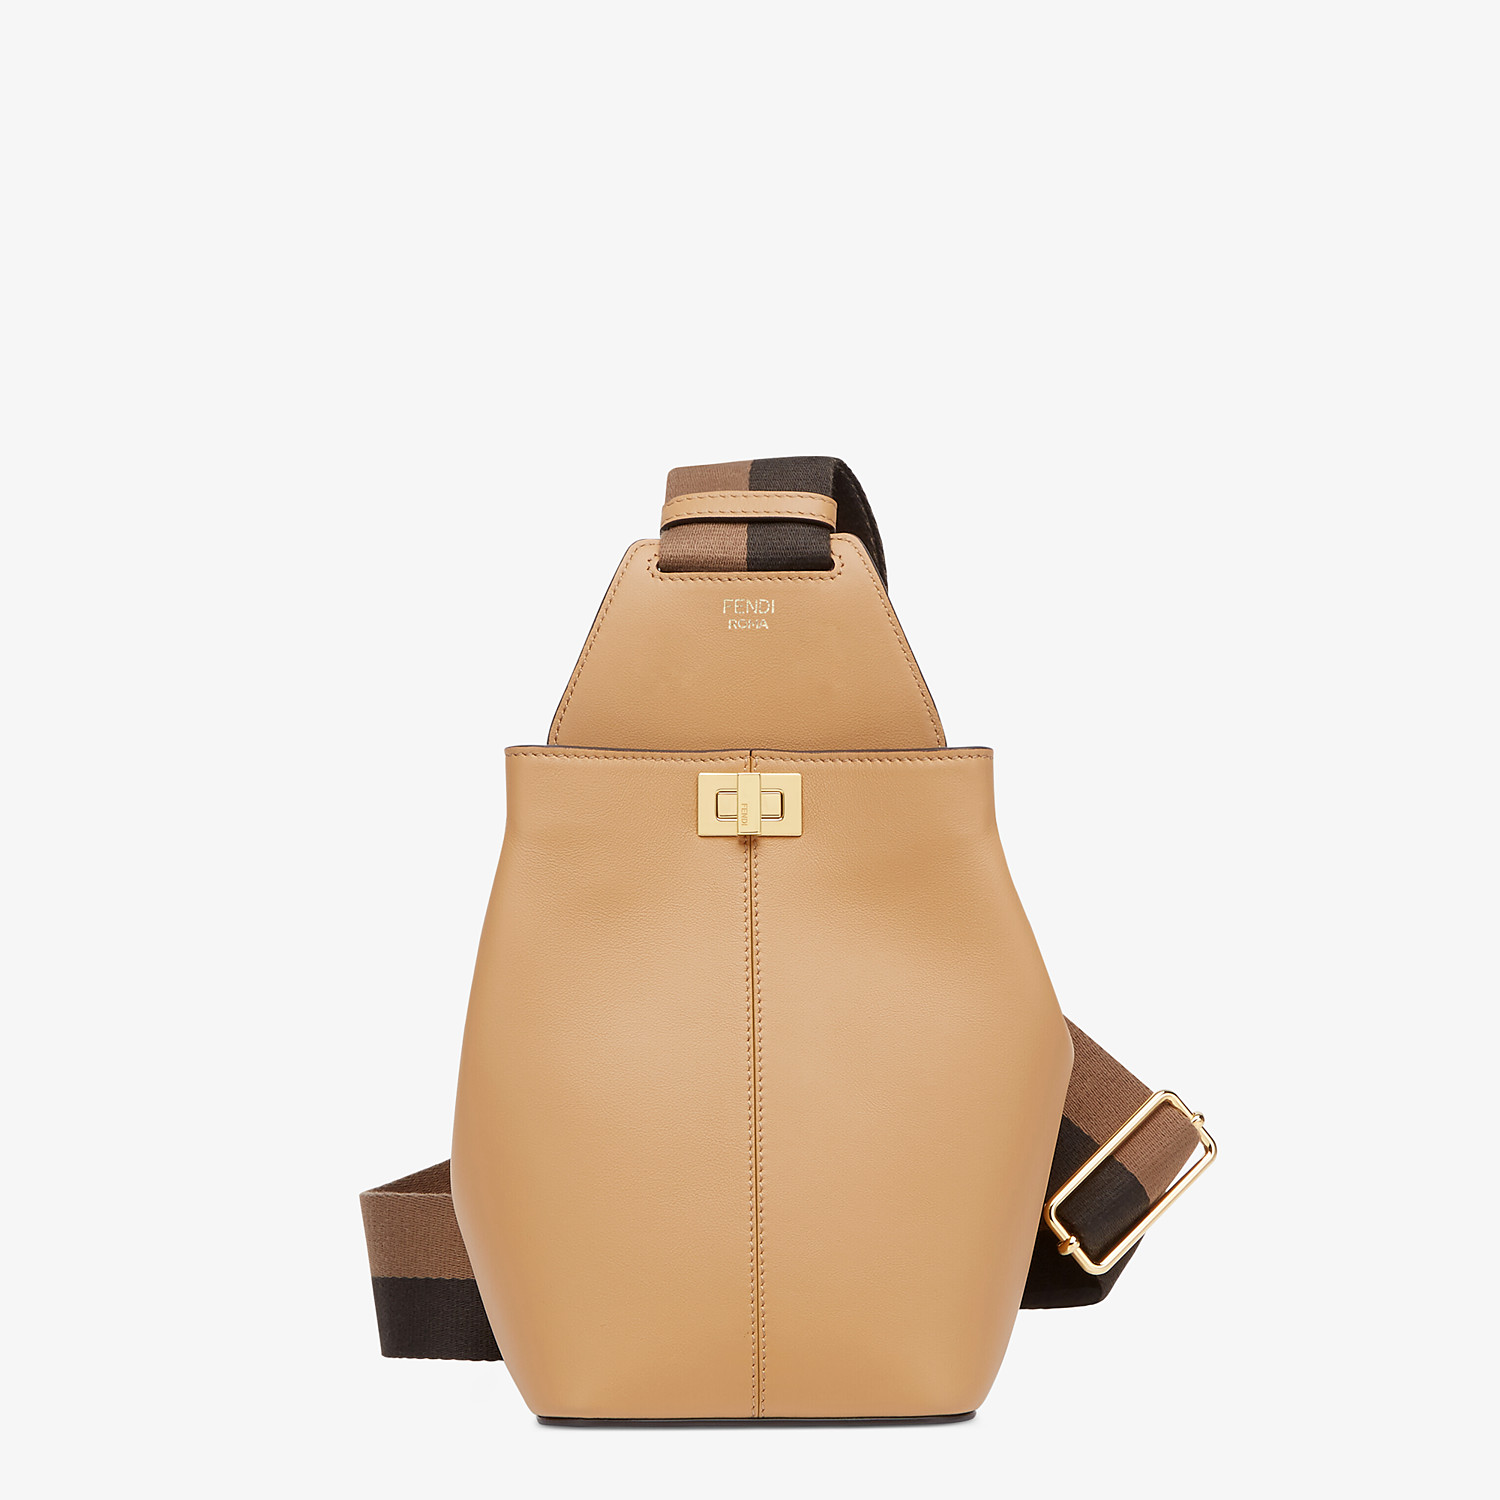 FENDI GUITAR BAG - Beige leather mini-bag - view 1 detail